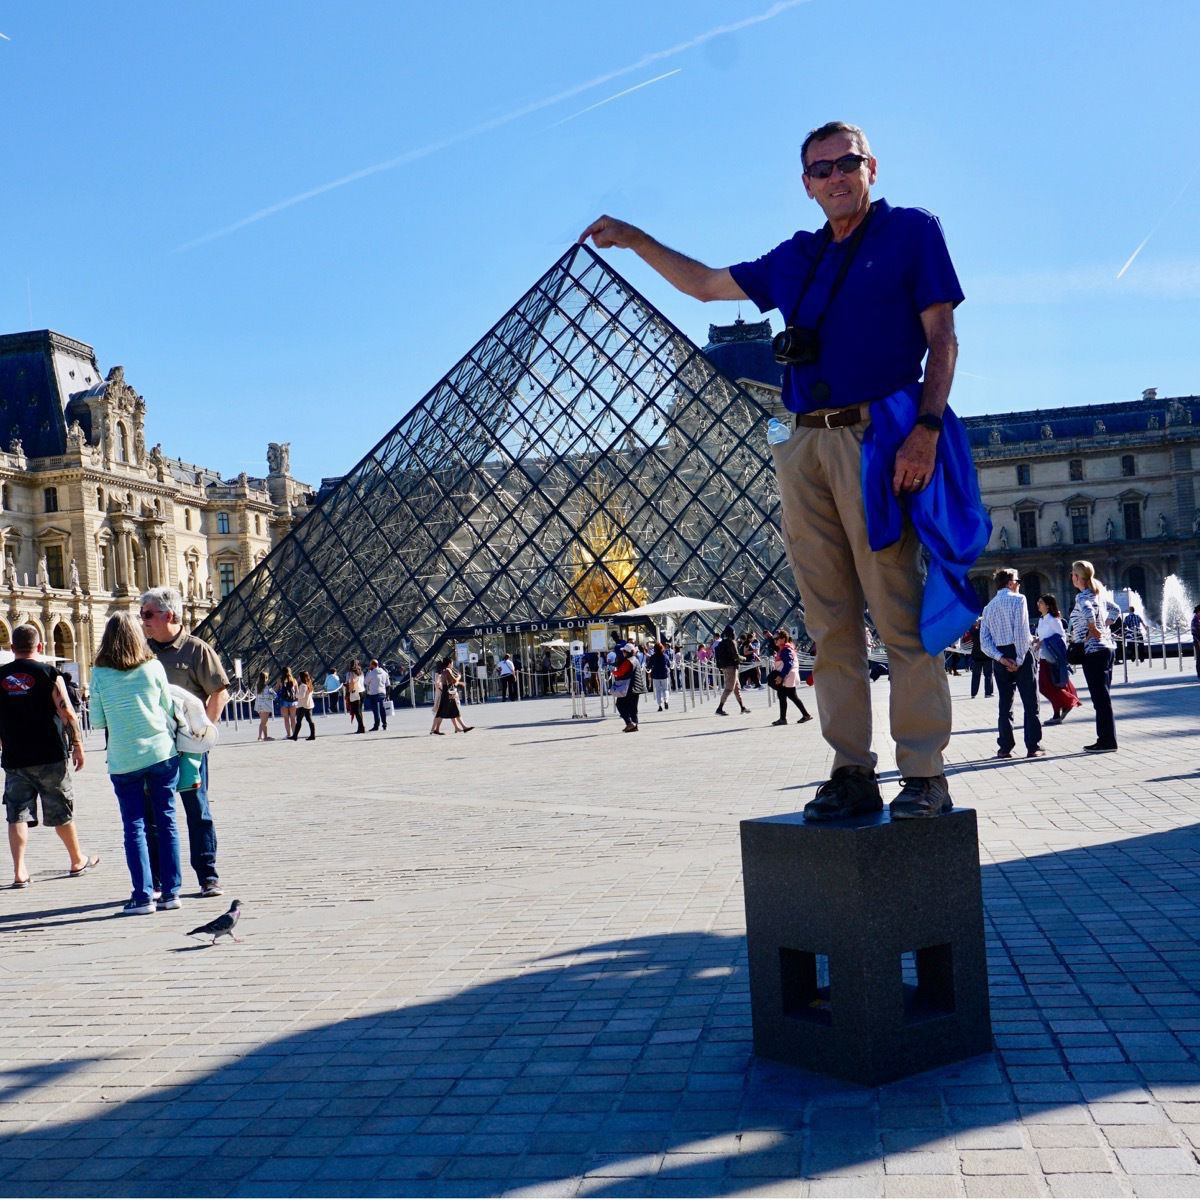 Tom at the Louvre